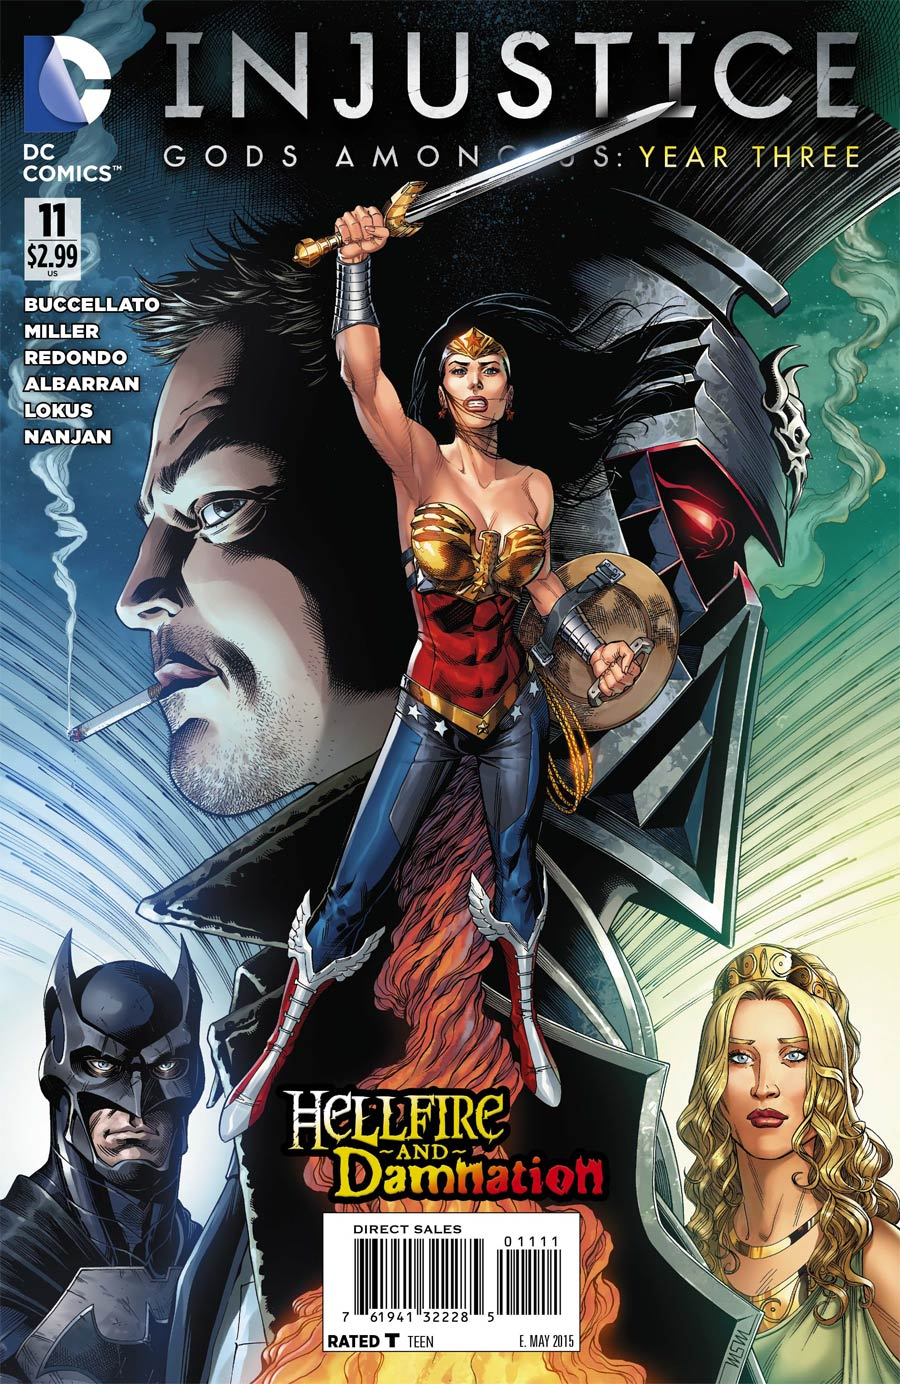 Injustice: Gods Among Us: Year Three Vol 1 11